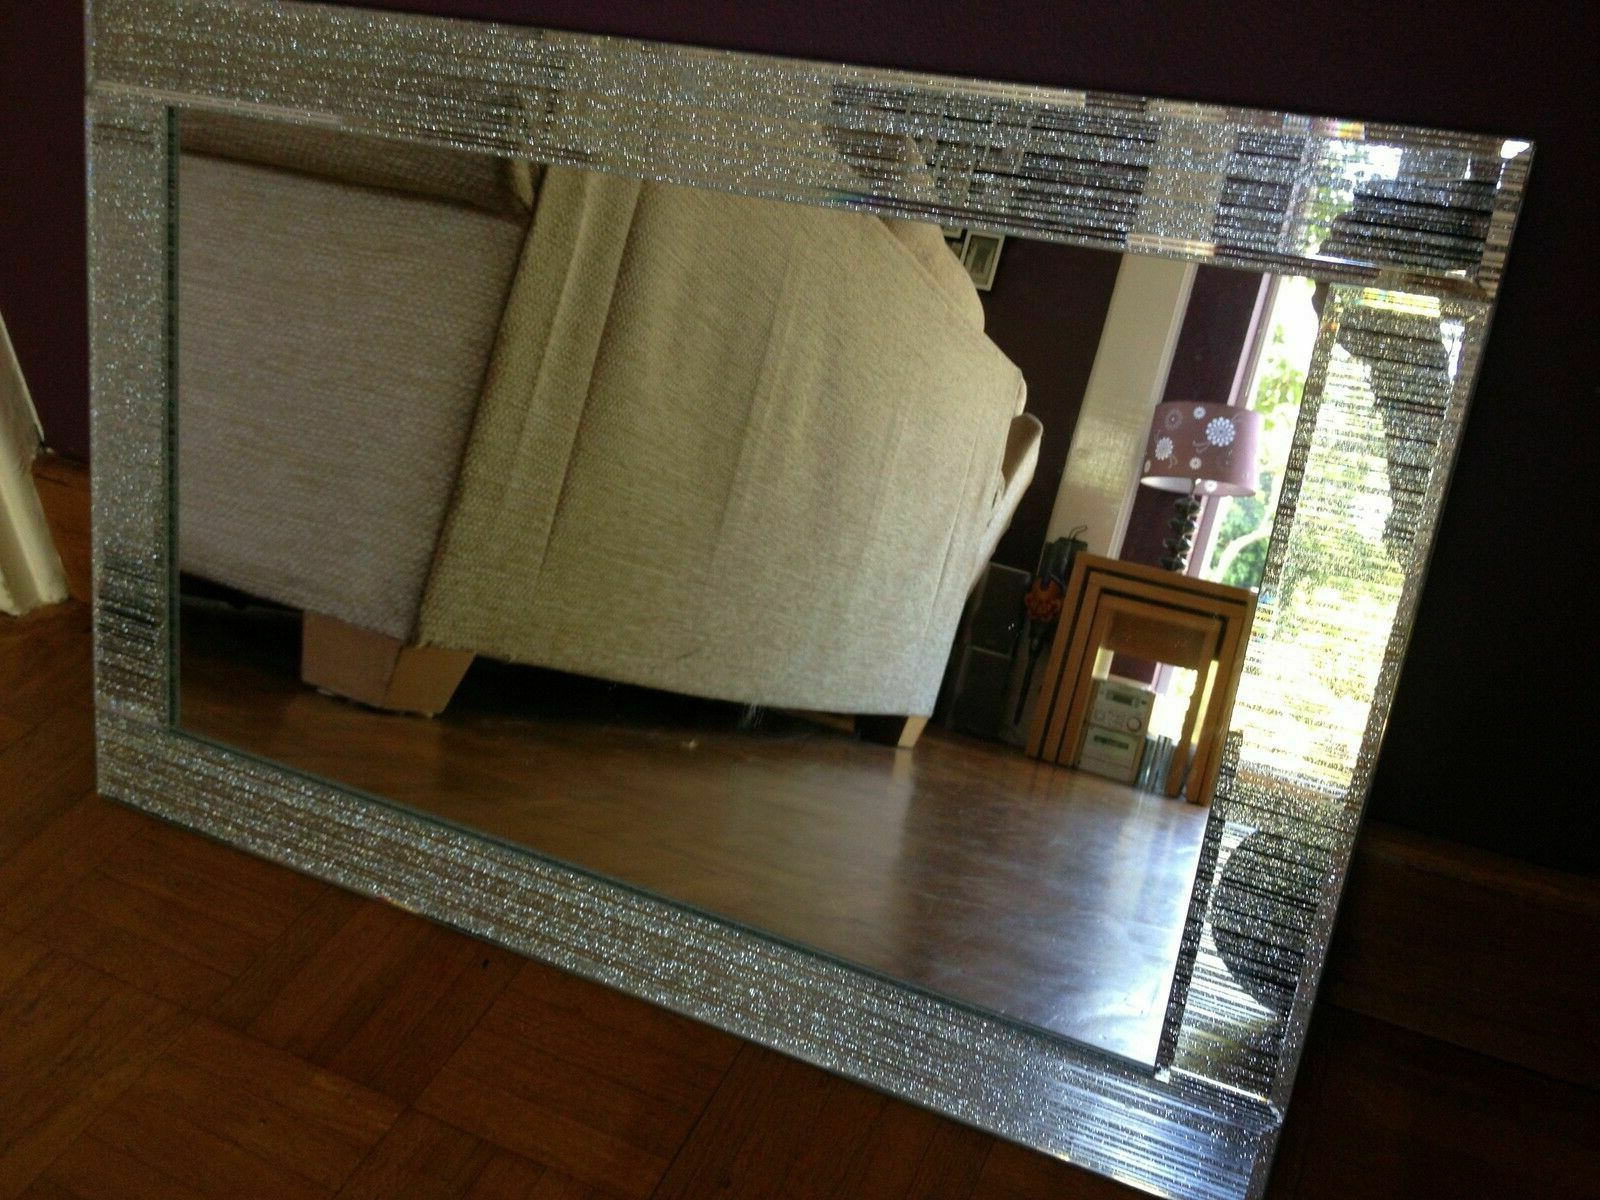 Glitter Wall Mirrors With Widely Used Glitter Silver Mirror Frame Glass Living Room Lounge Bedroom Wall 40x60cm Bling (View 8 of 20)